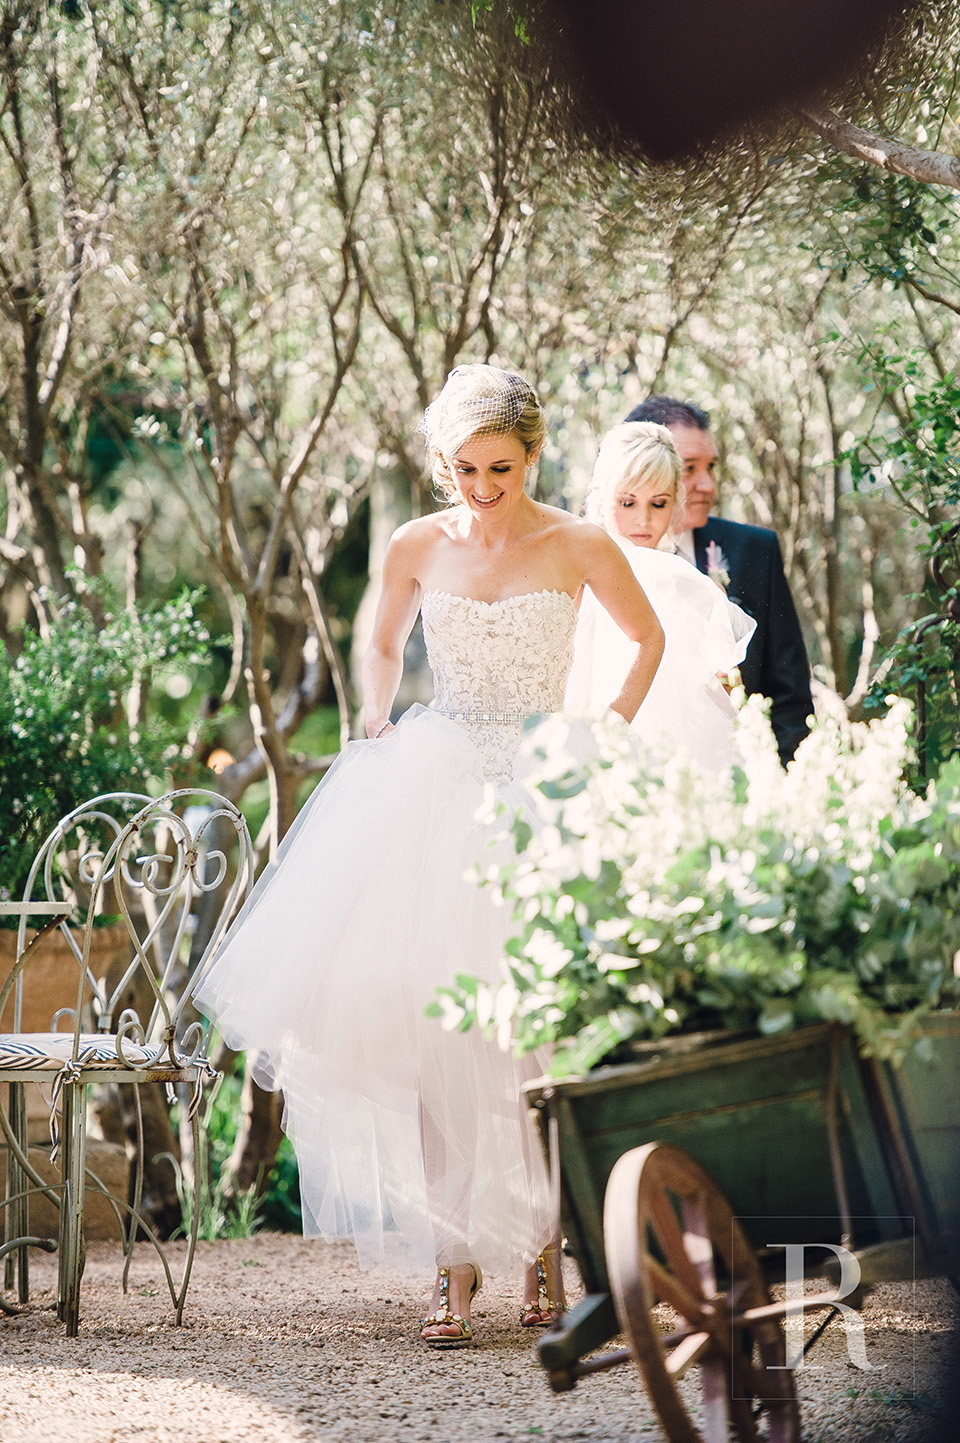 RYAN PARKER_WEDDING PHOTOGRAPHER_JOHANNESBURG_MORRELLS_M&M-1956.jpg